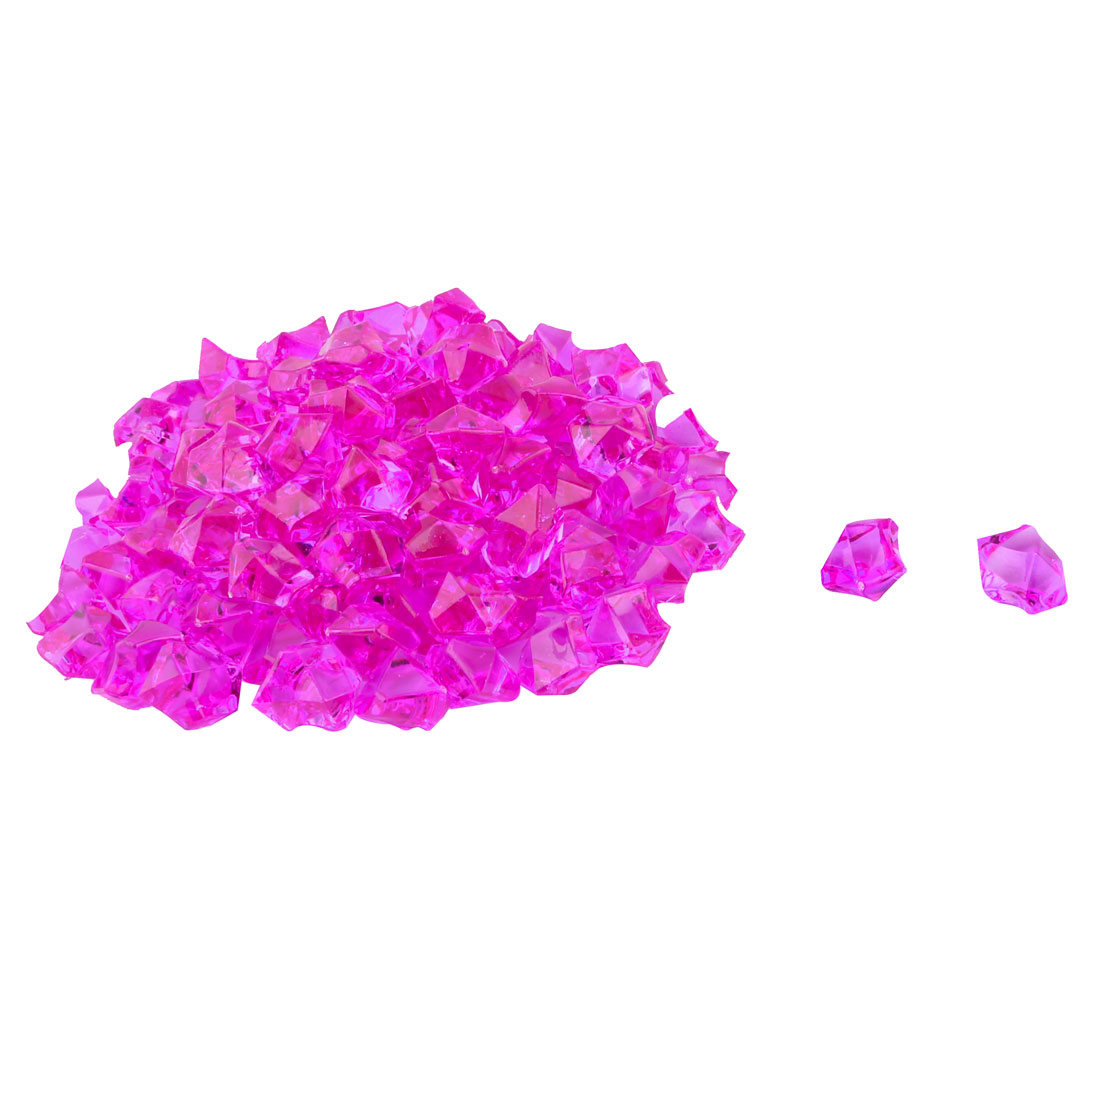 Fish Tank Aquarium Irregular Acrylic Ice Rock Scatters Decorative Stone Fuchsia 111pcs